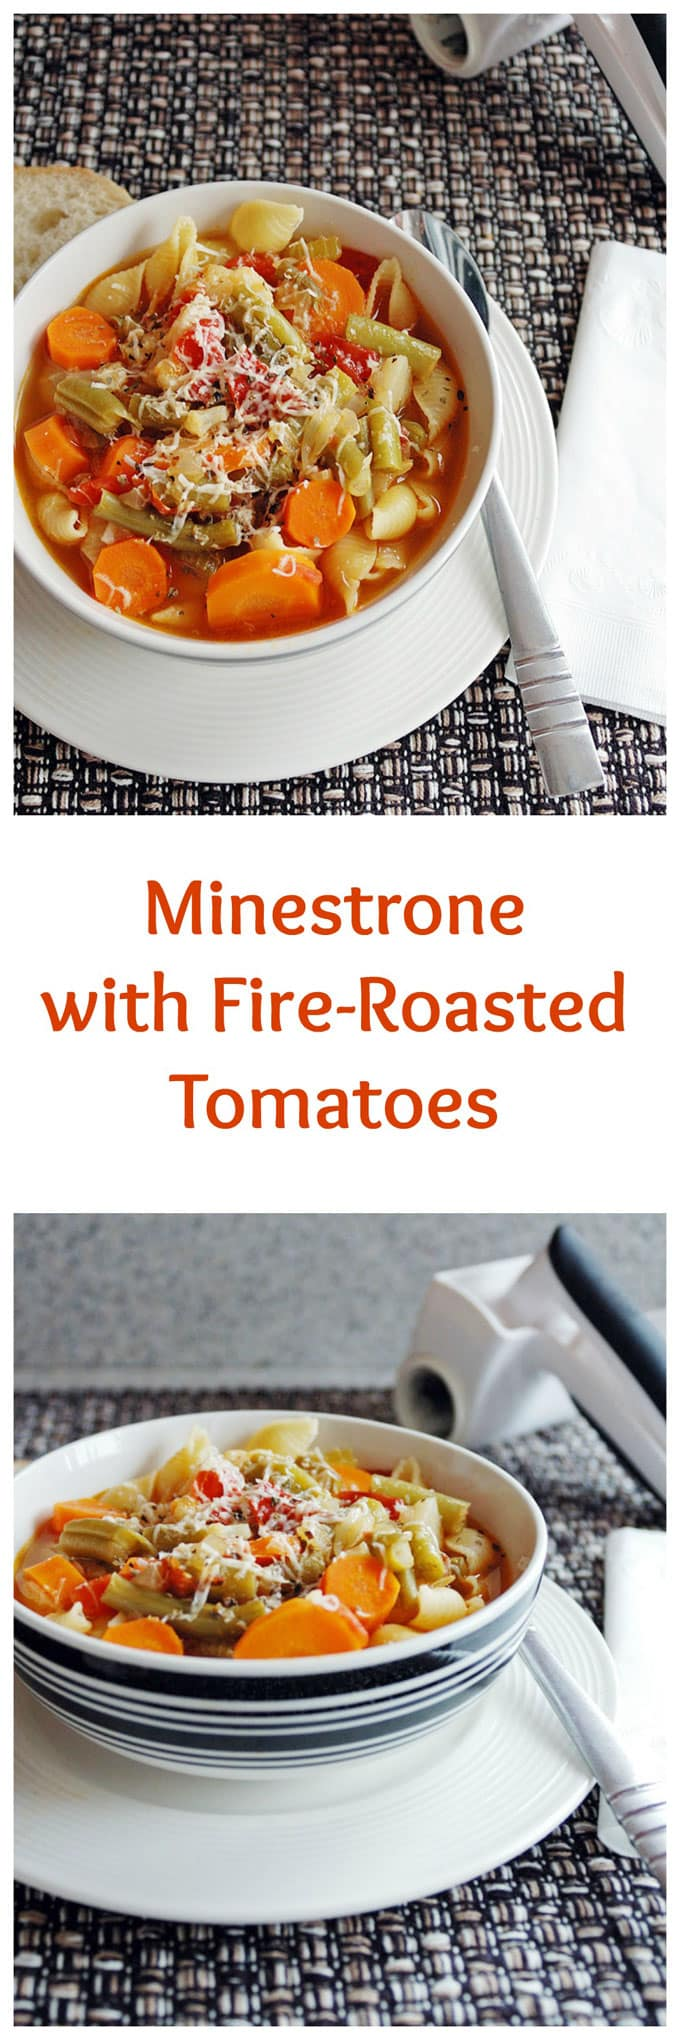 Minestrone with Fire-Roasted Tomatoes. A delicious, hearty soup accented with Romano cheese!